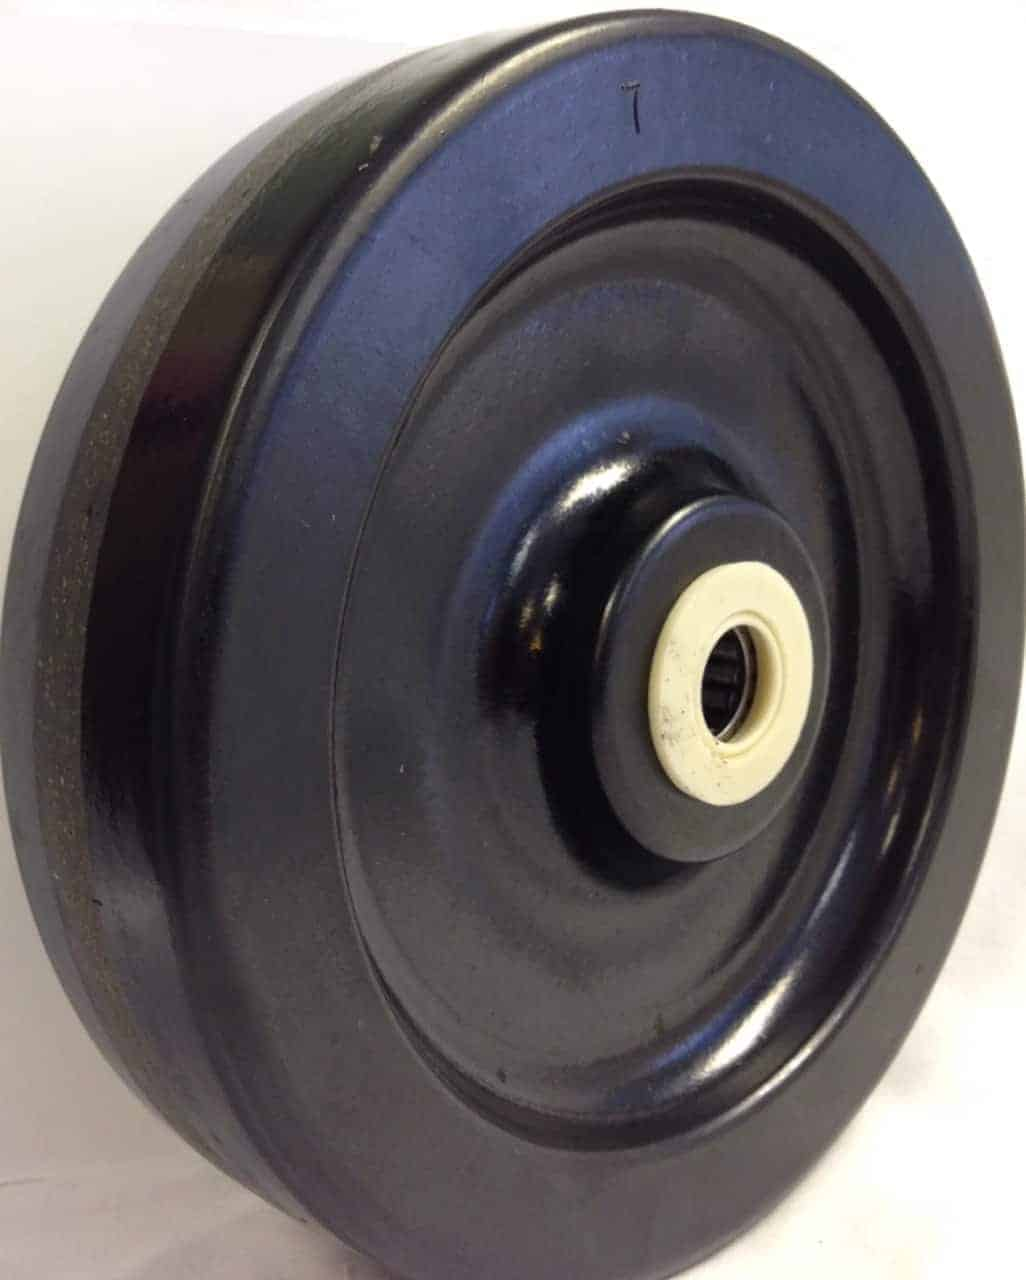 16″ Phenolic Wheel With 3-1/4″ Hub 1-1/2″ Roller Bearing 4000 Lbs Capacity